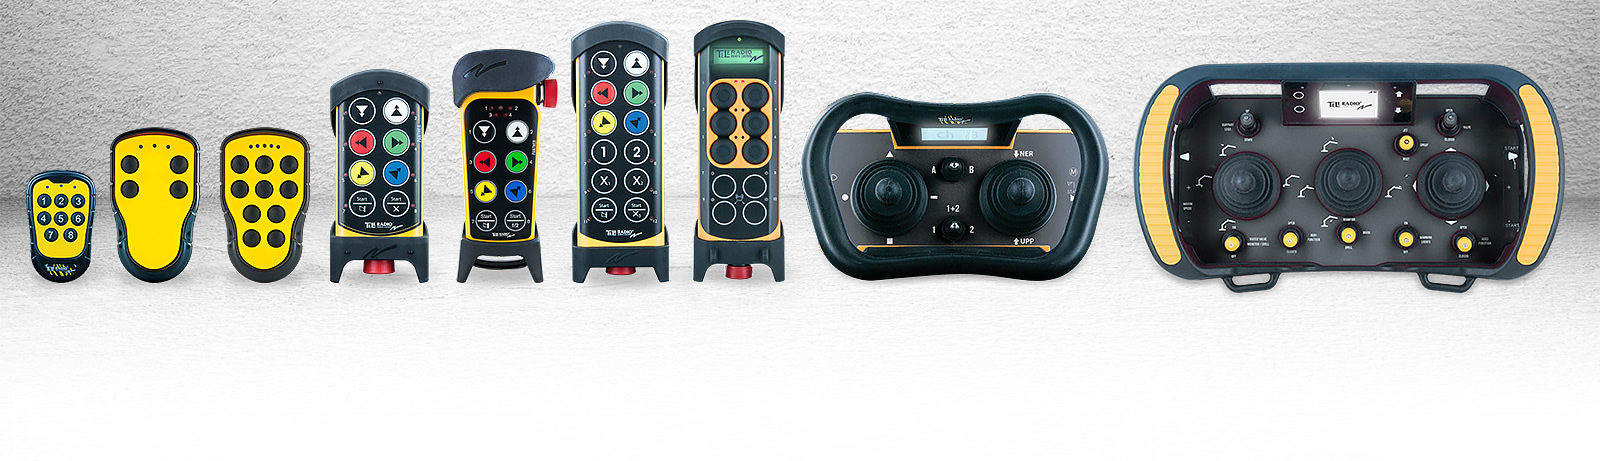 Safe radio remote control - Tele Radio | We offer wireless